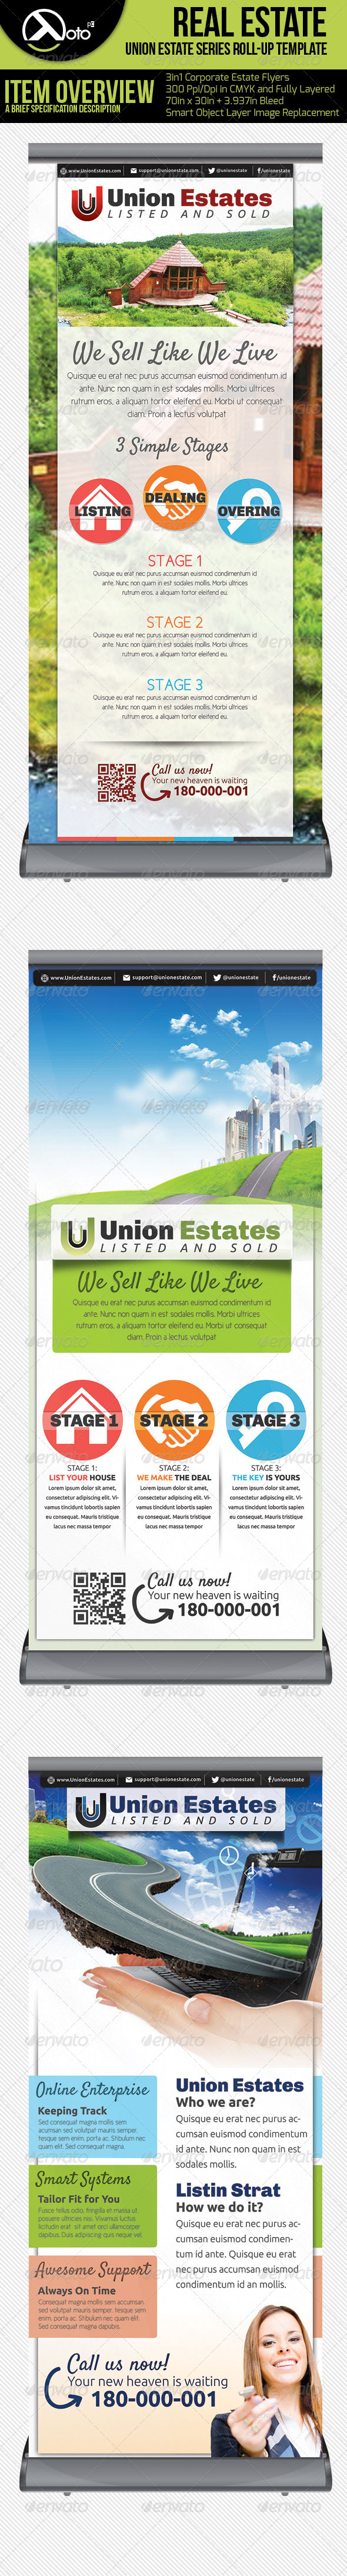 3 in 1 Real Estate Roll-up Banners - Signage Print Templates